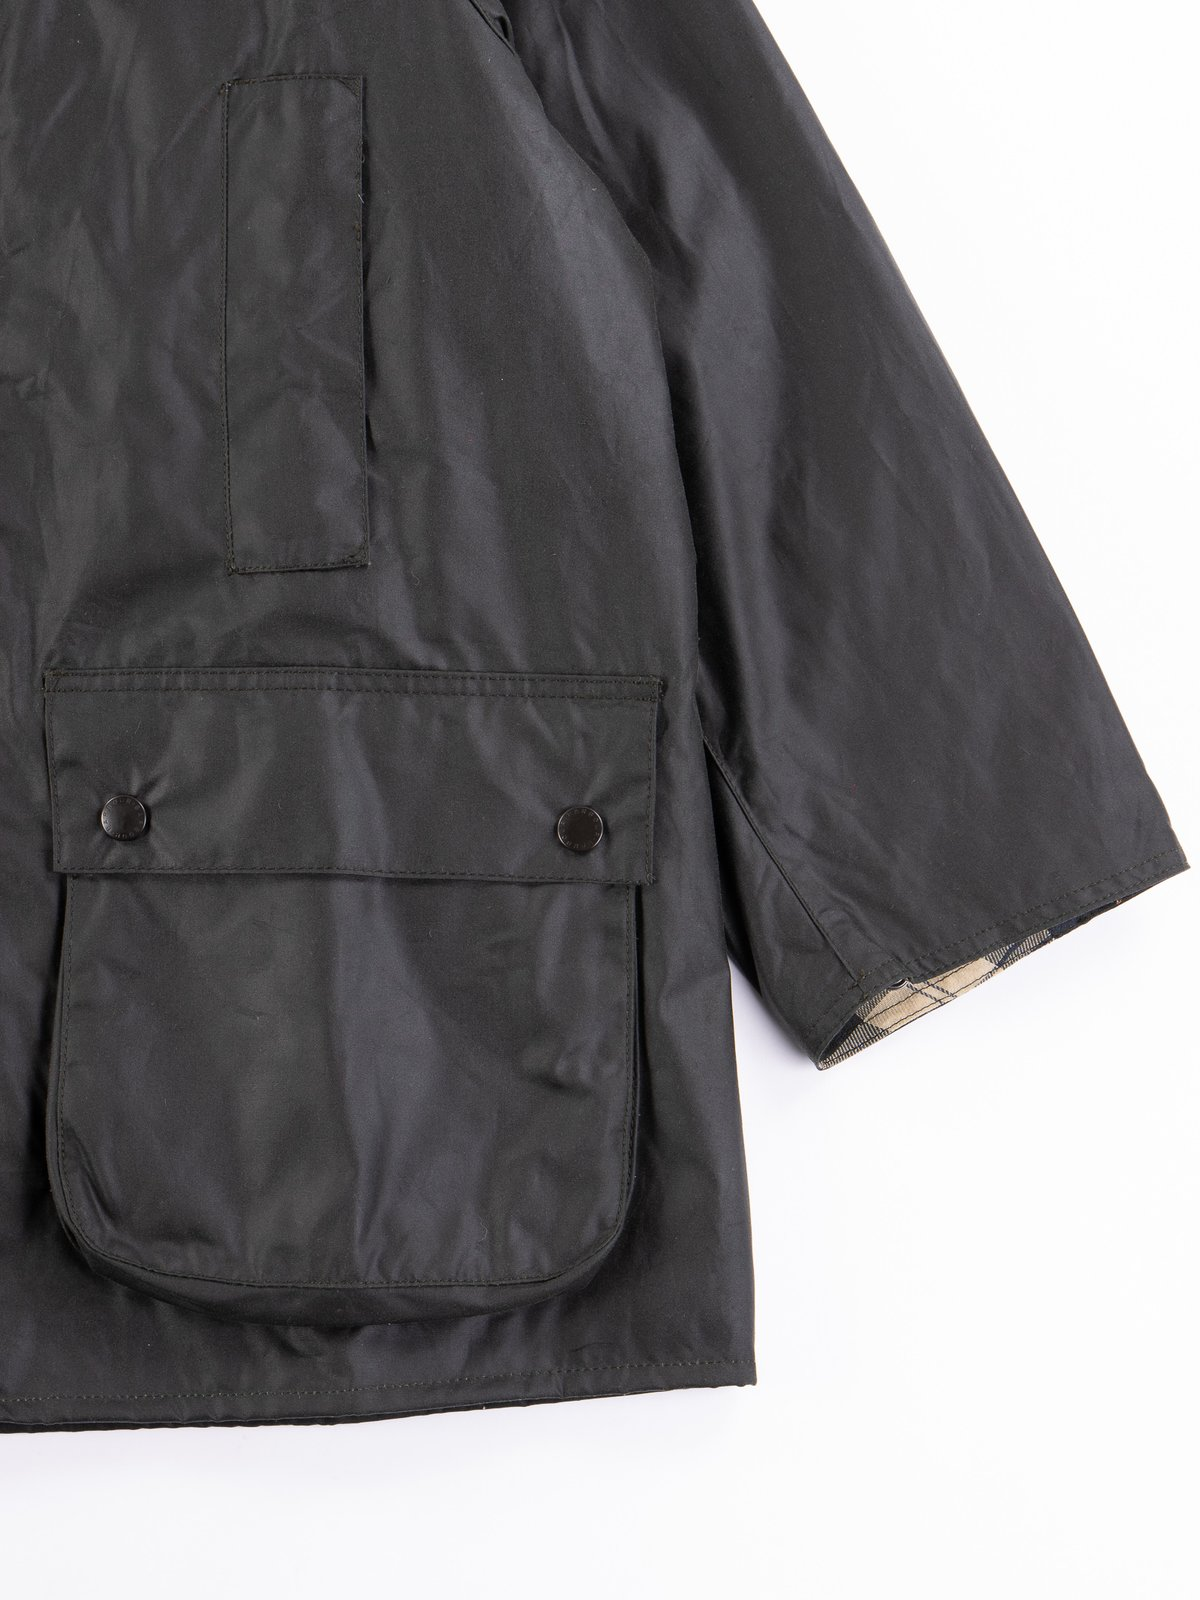 Sage Oversized Beaufort Waxed Cotton Jacket - Image 5